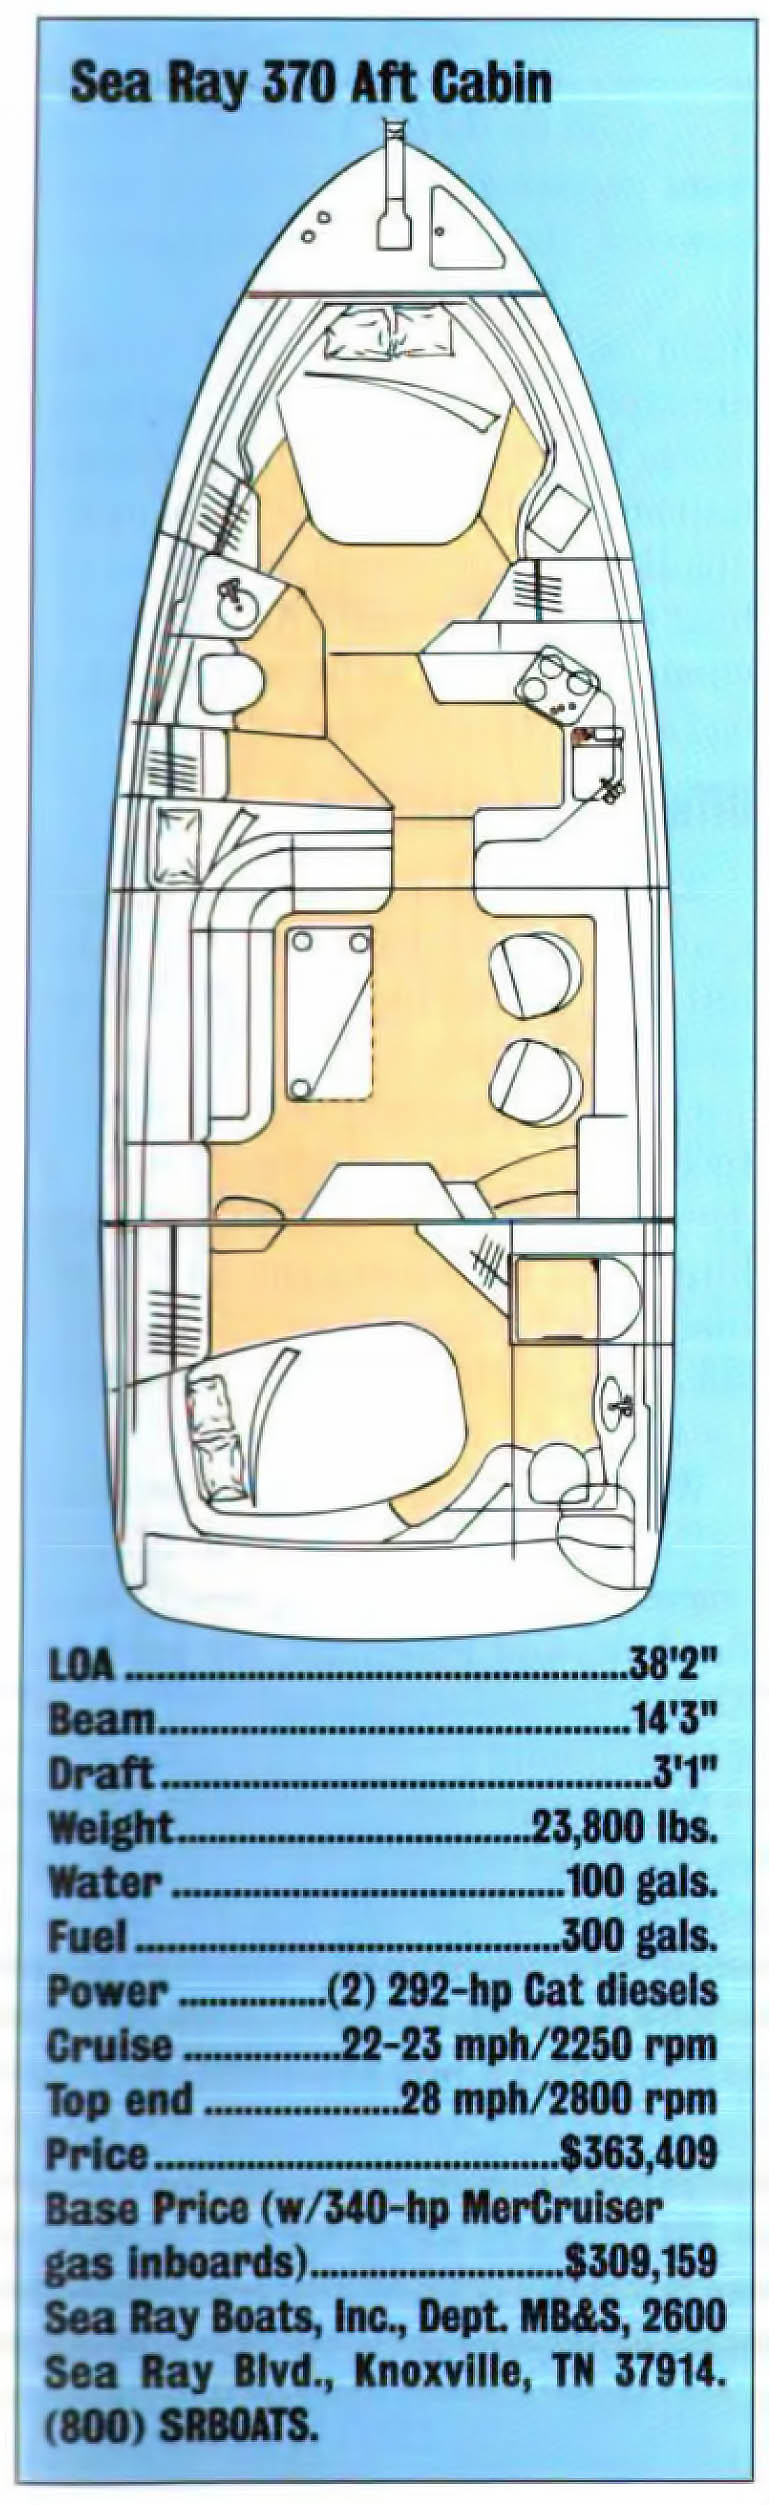 hight resolution of sea ray 370 aft cabin layout